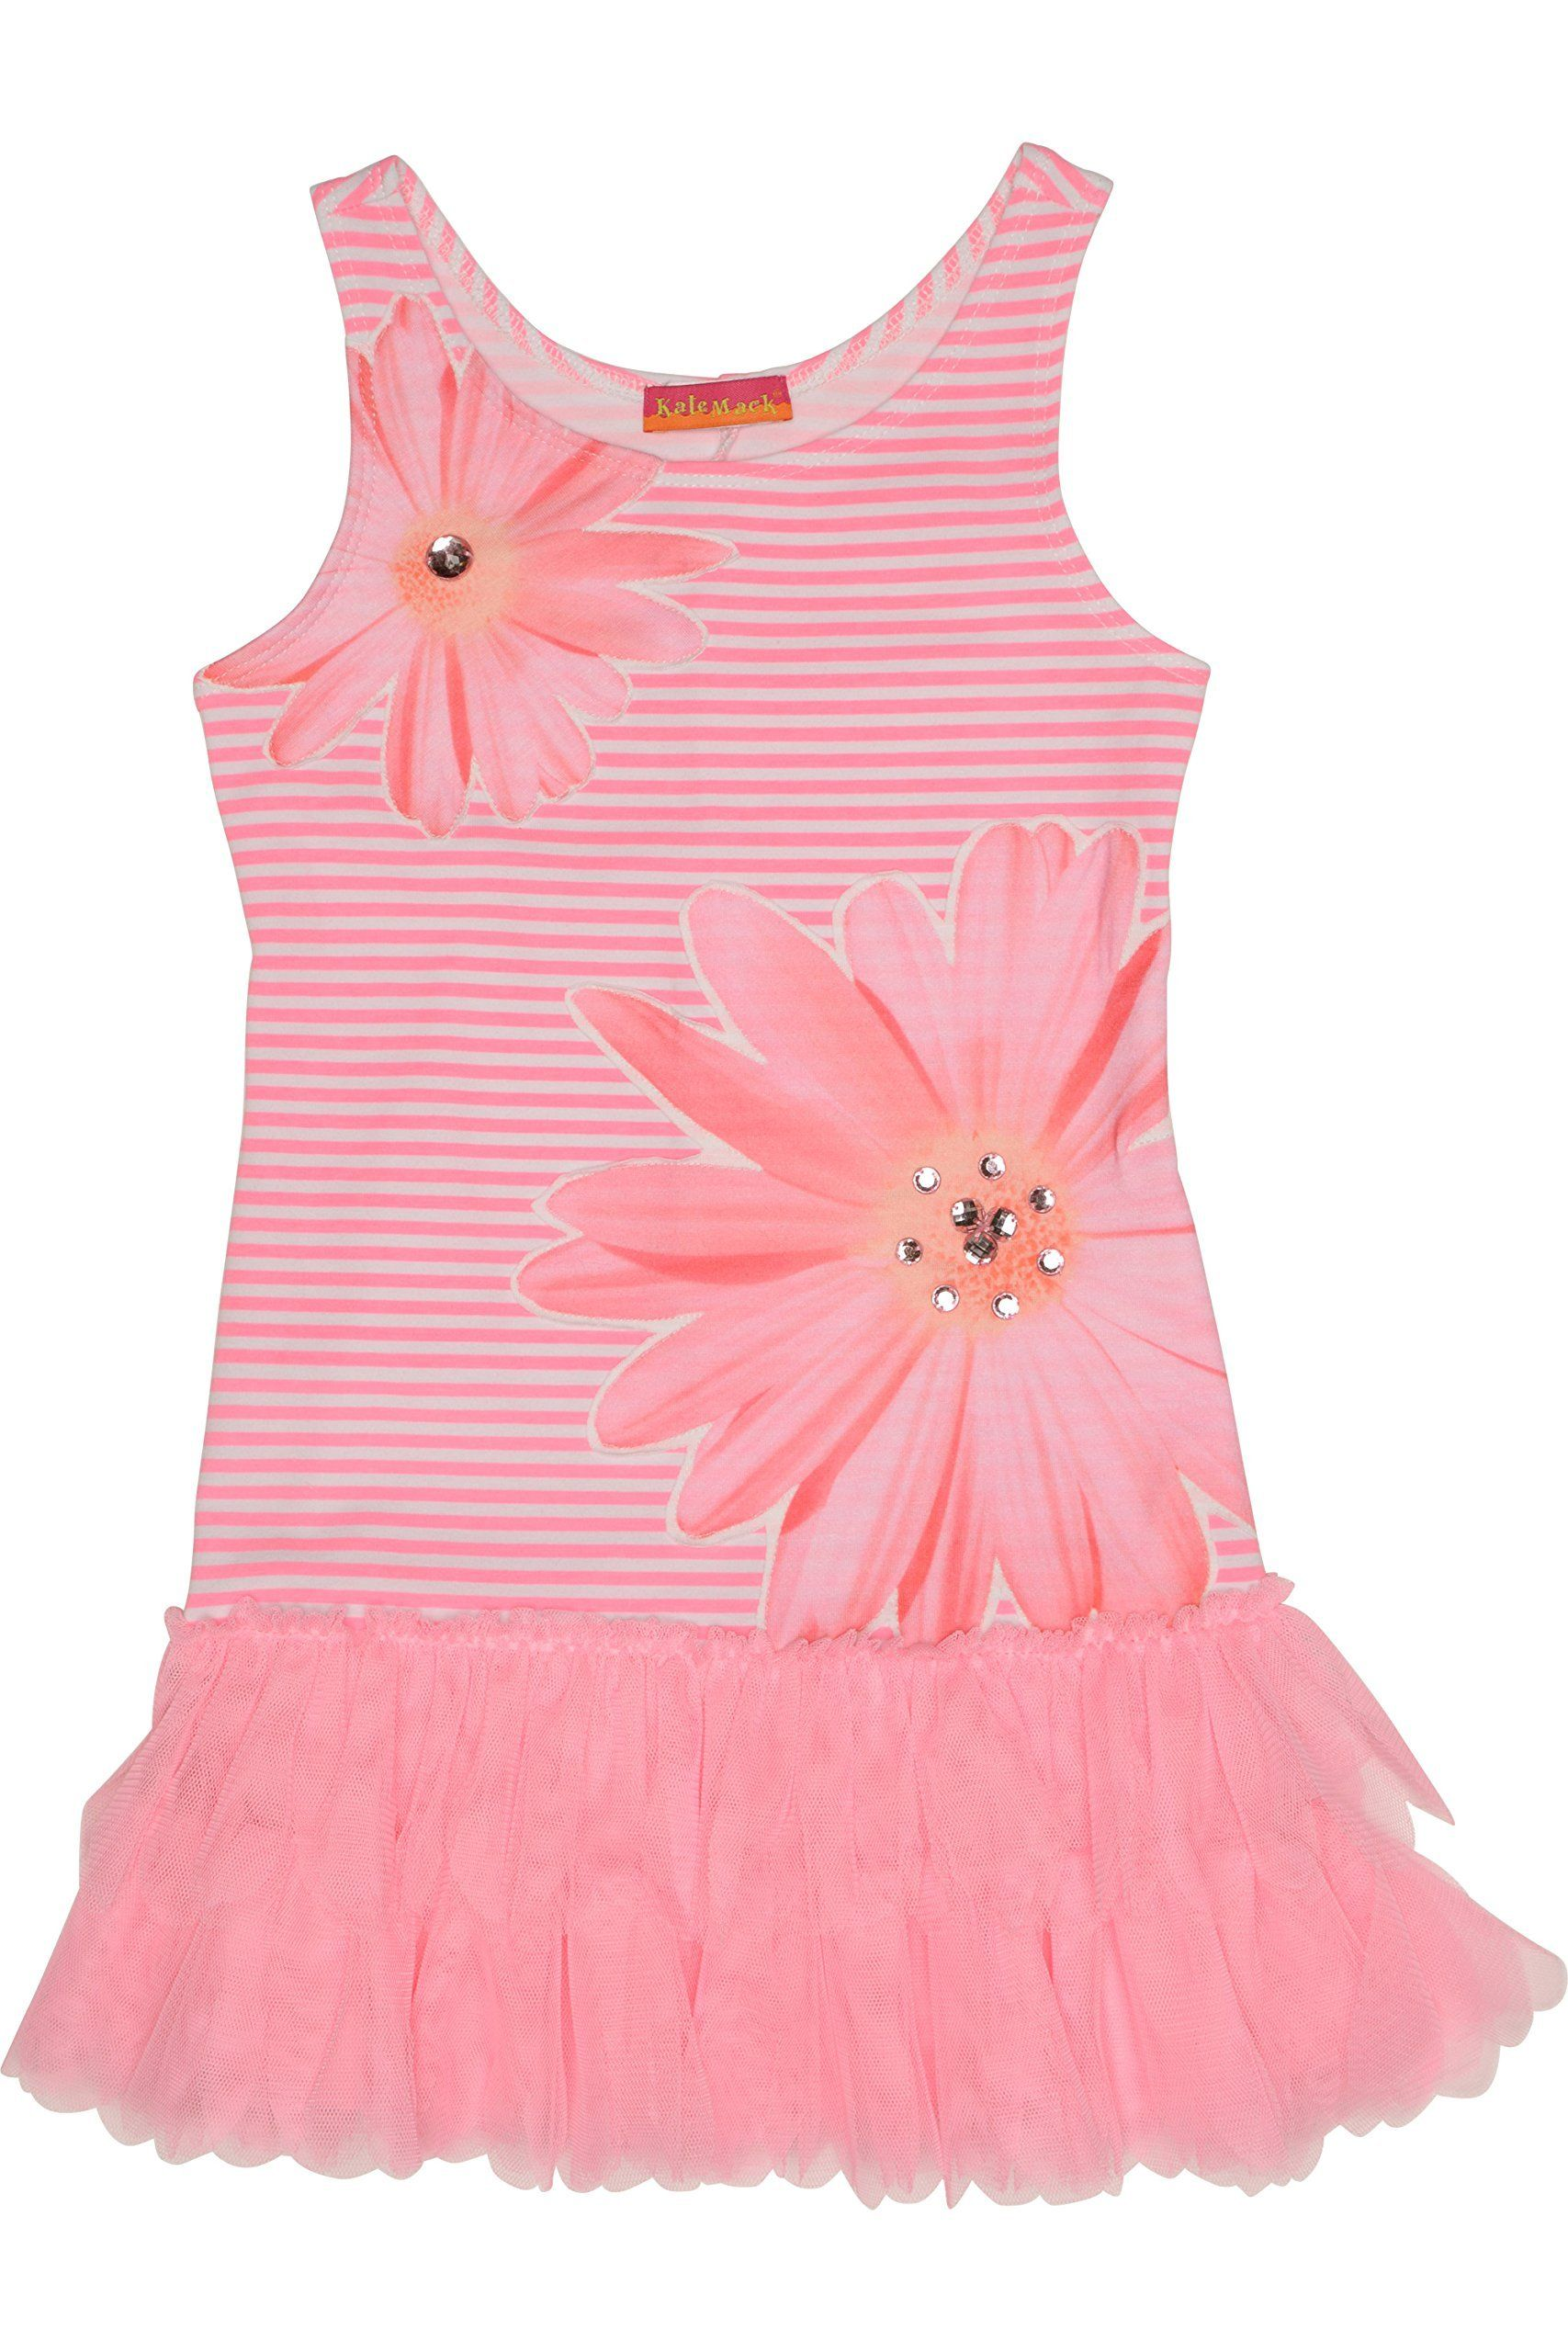 Kate Mack Girl's 2-6X Dottie Daisy Dress. This little dress is full of personality - from the striped bodice with oversized daisies to the ruffly netting skirt. Perfect for those sunny days of summer.